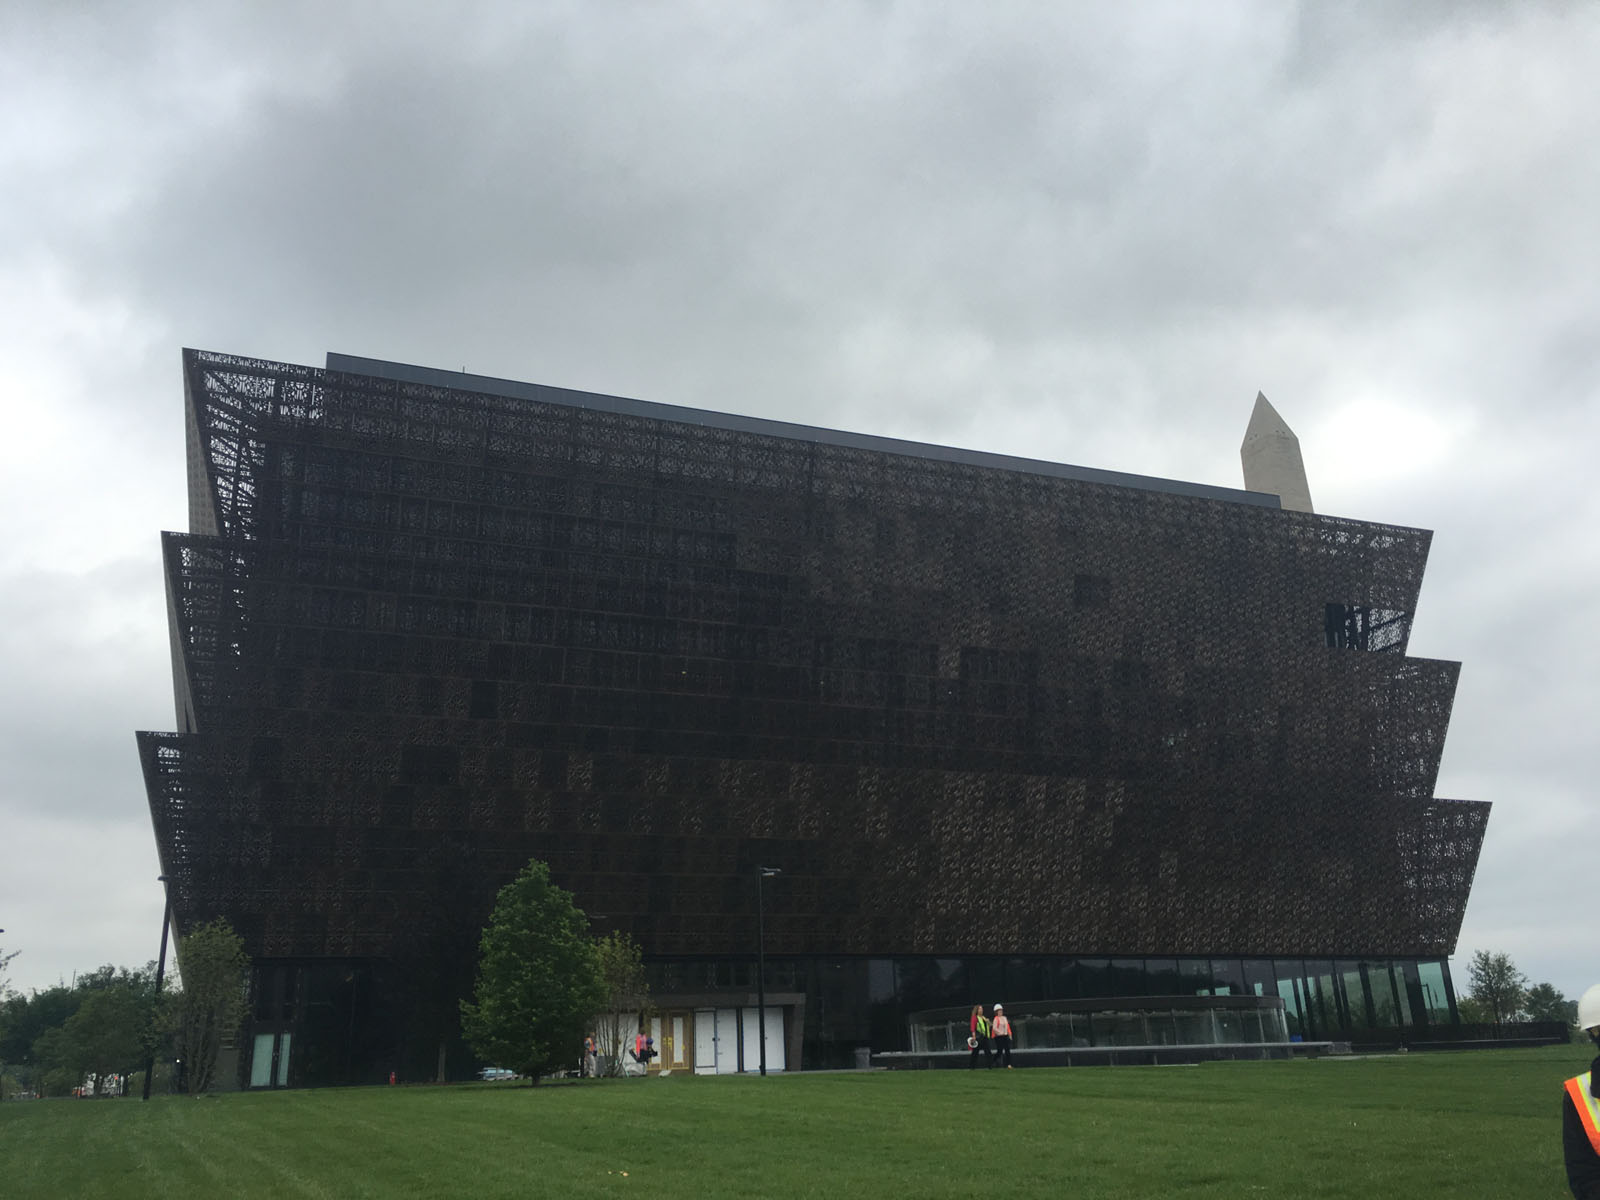 Get free 'timed passes' to Smithsonian's newest museum